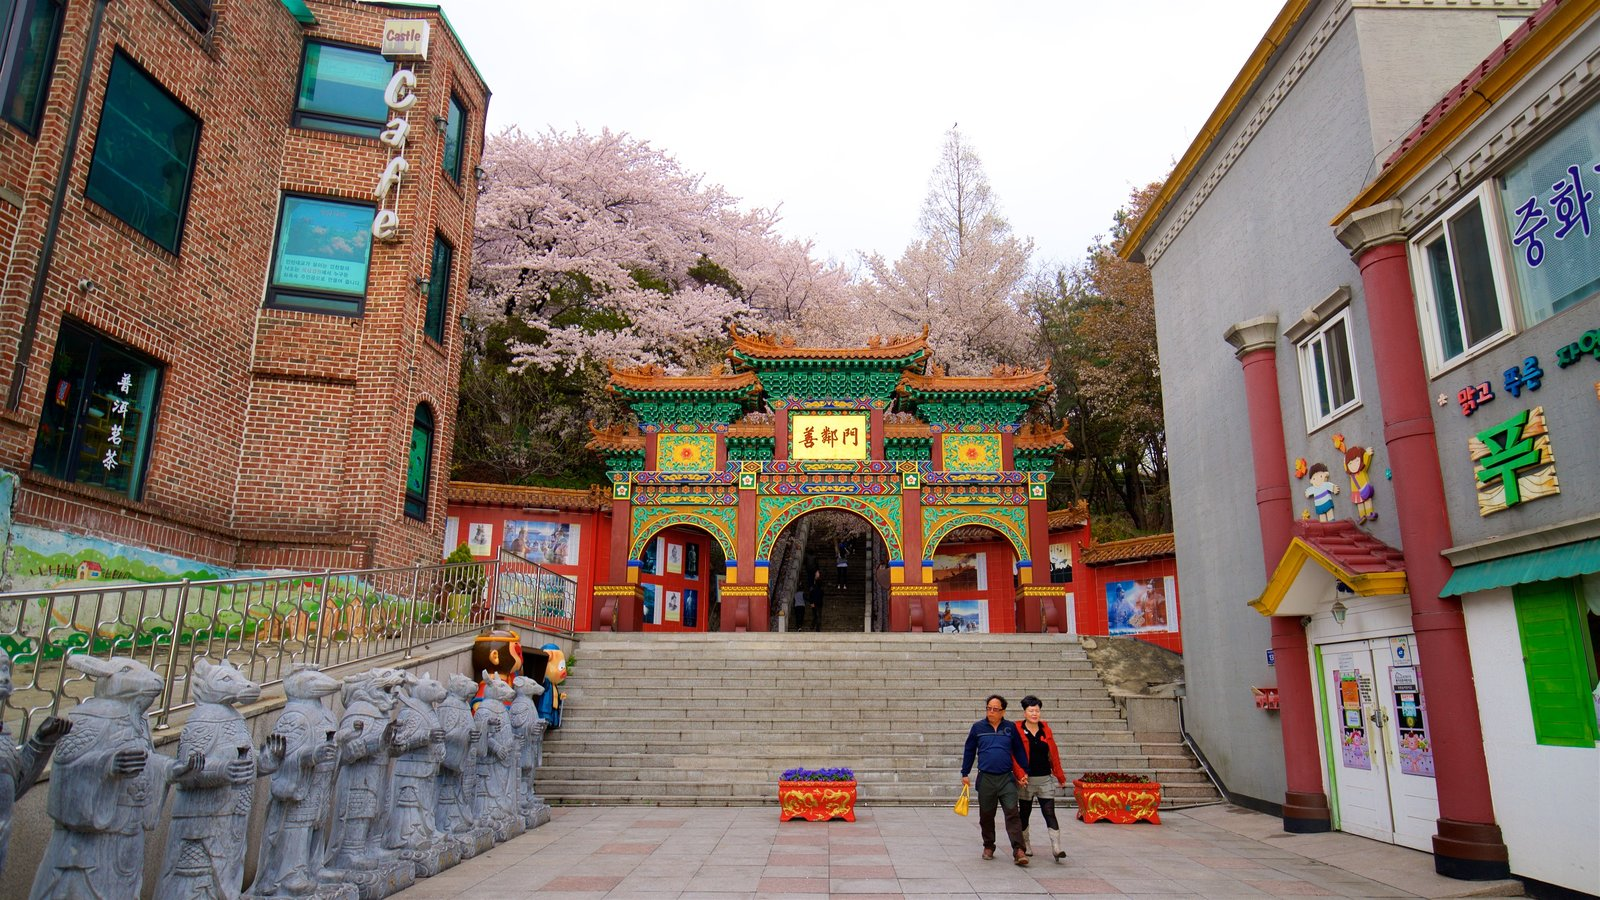 Chinatown showing heritage elements and wildflowers as well as a couple